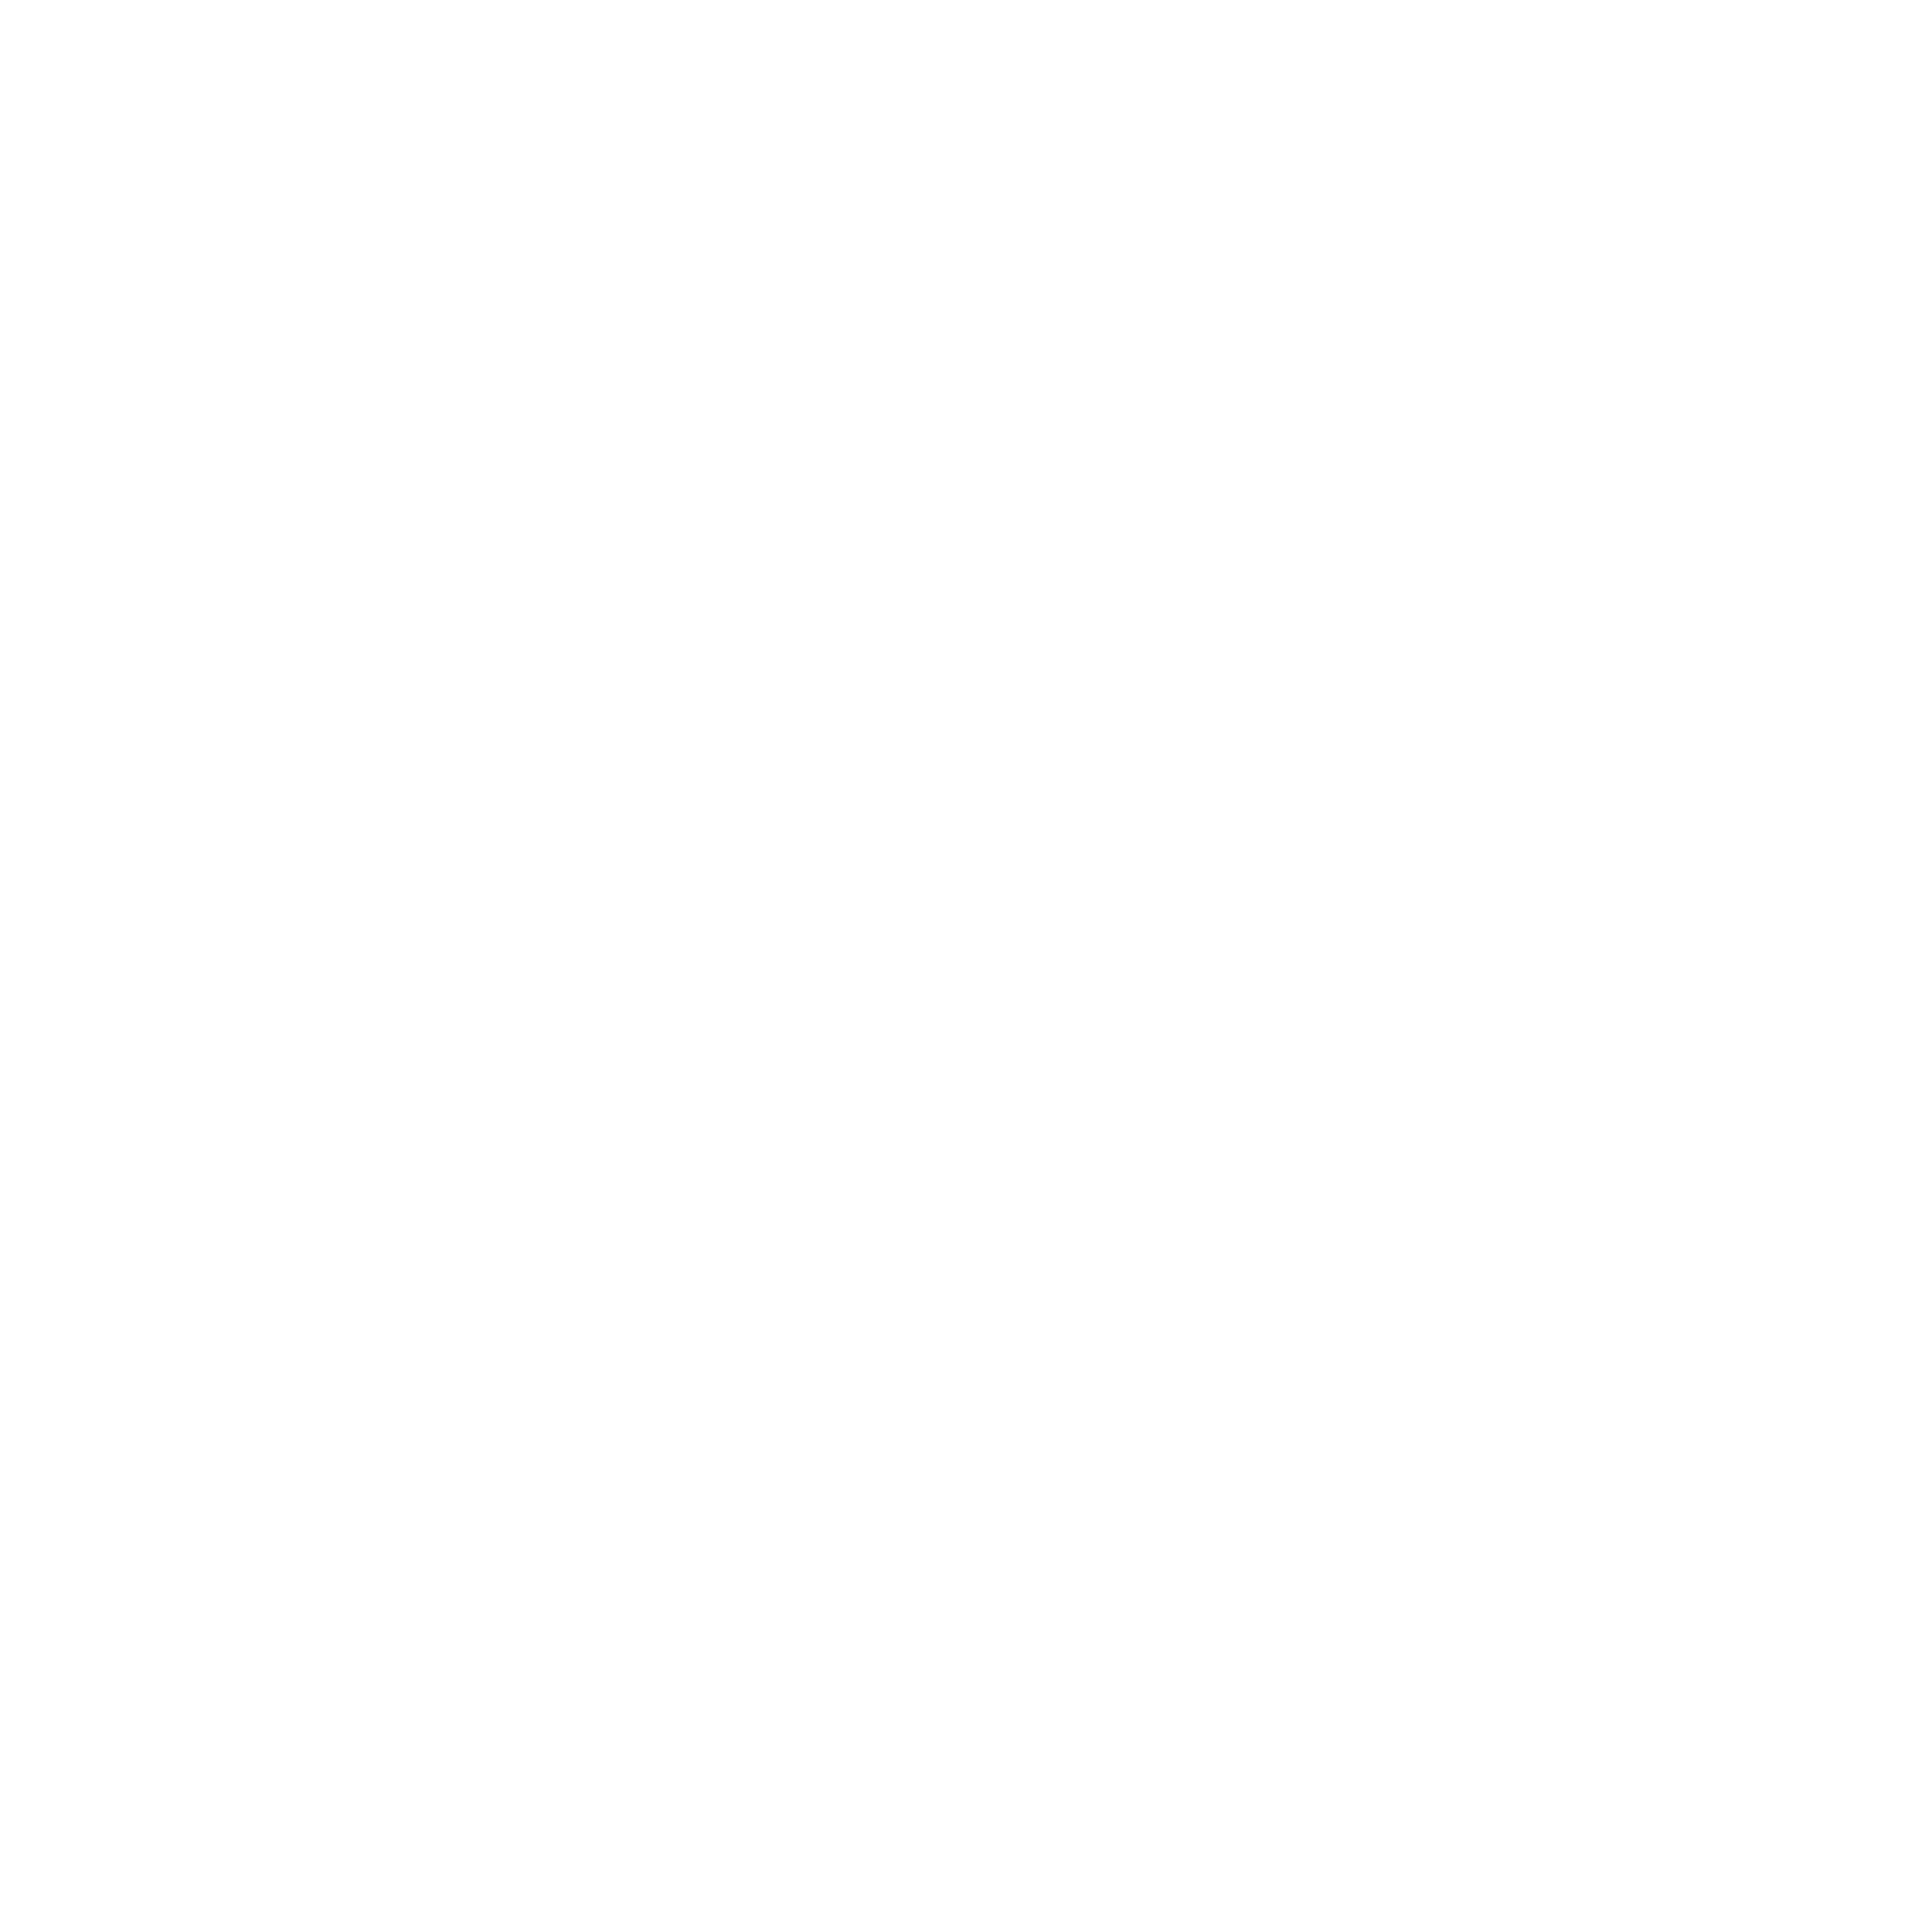 Twitch logo png white. Total transparent svg vector